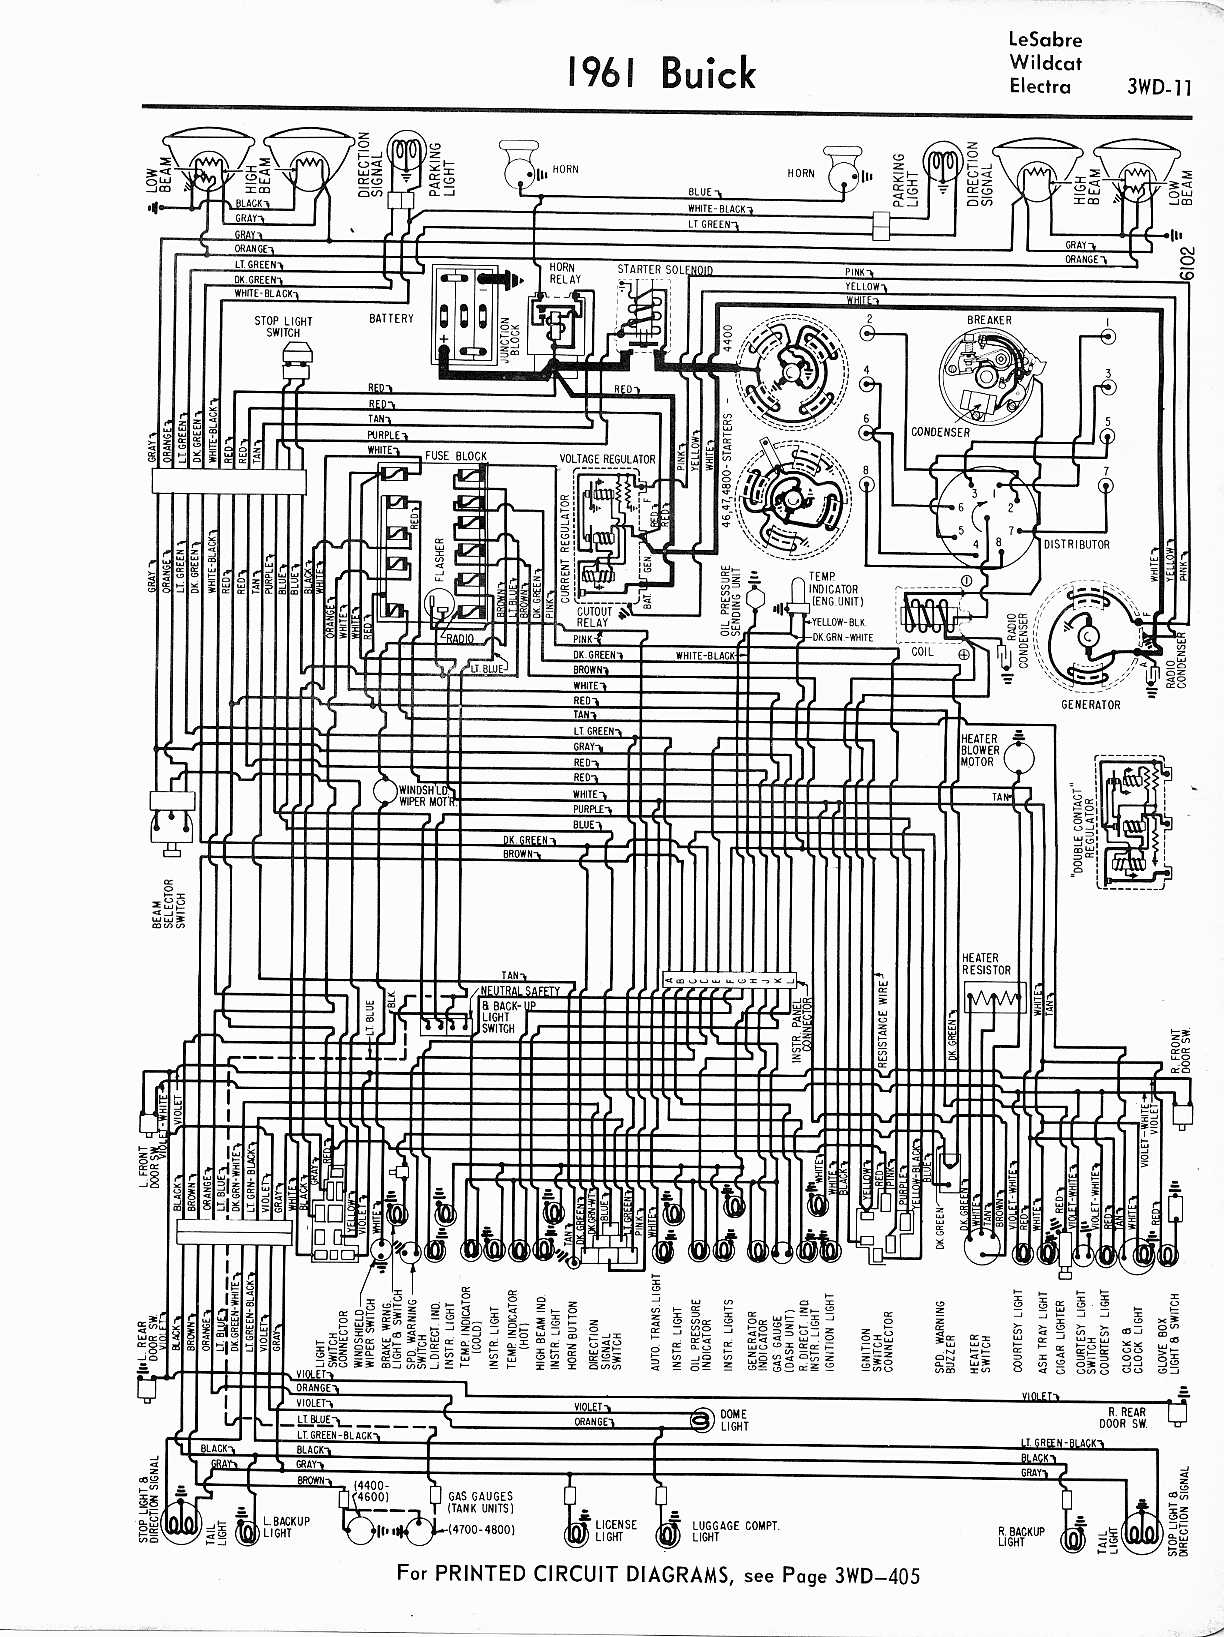 MWireBuic65_3WD 011 buick wiring diagrams 1957 1965 1999 Buick Century Wiring-Diagram at panicattacktreatment.co